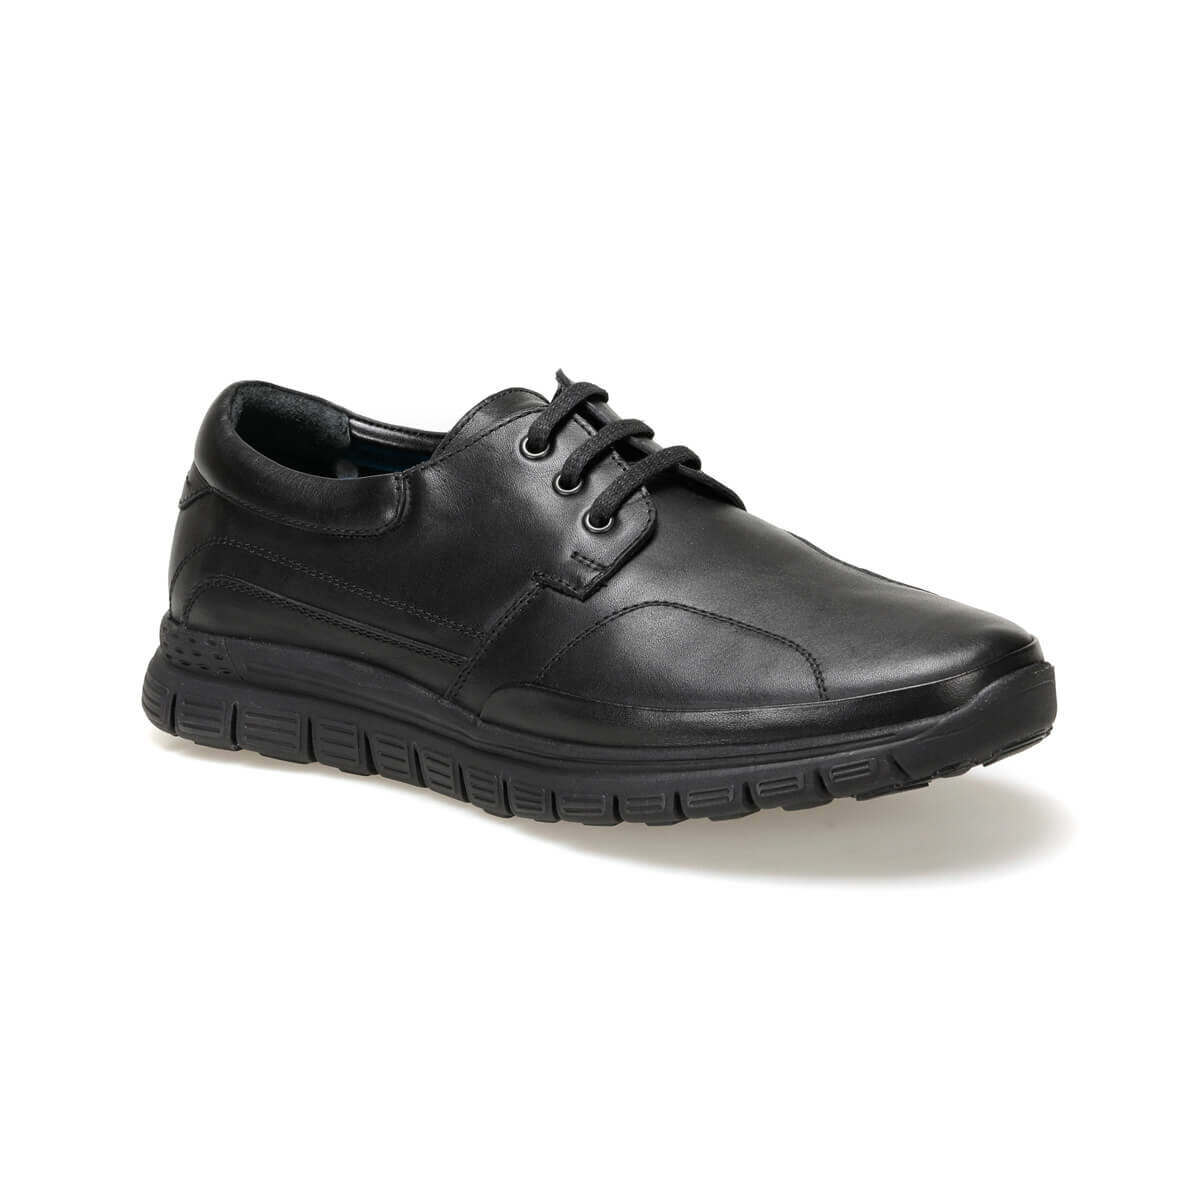 FLO COM-302 Black Male Shoes Flogart